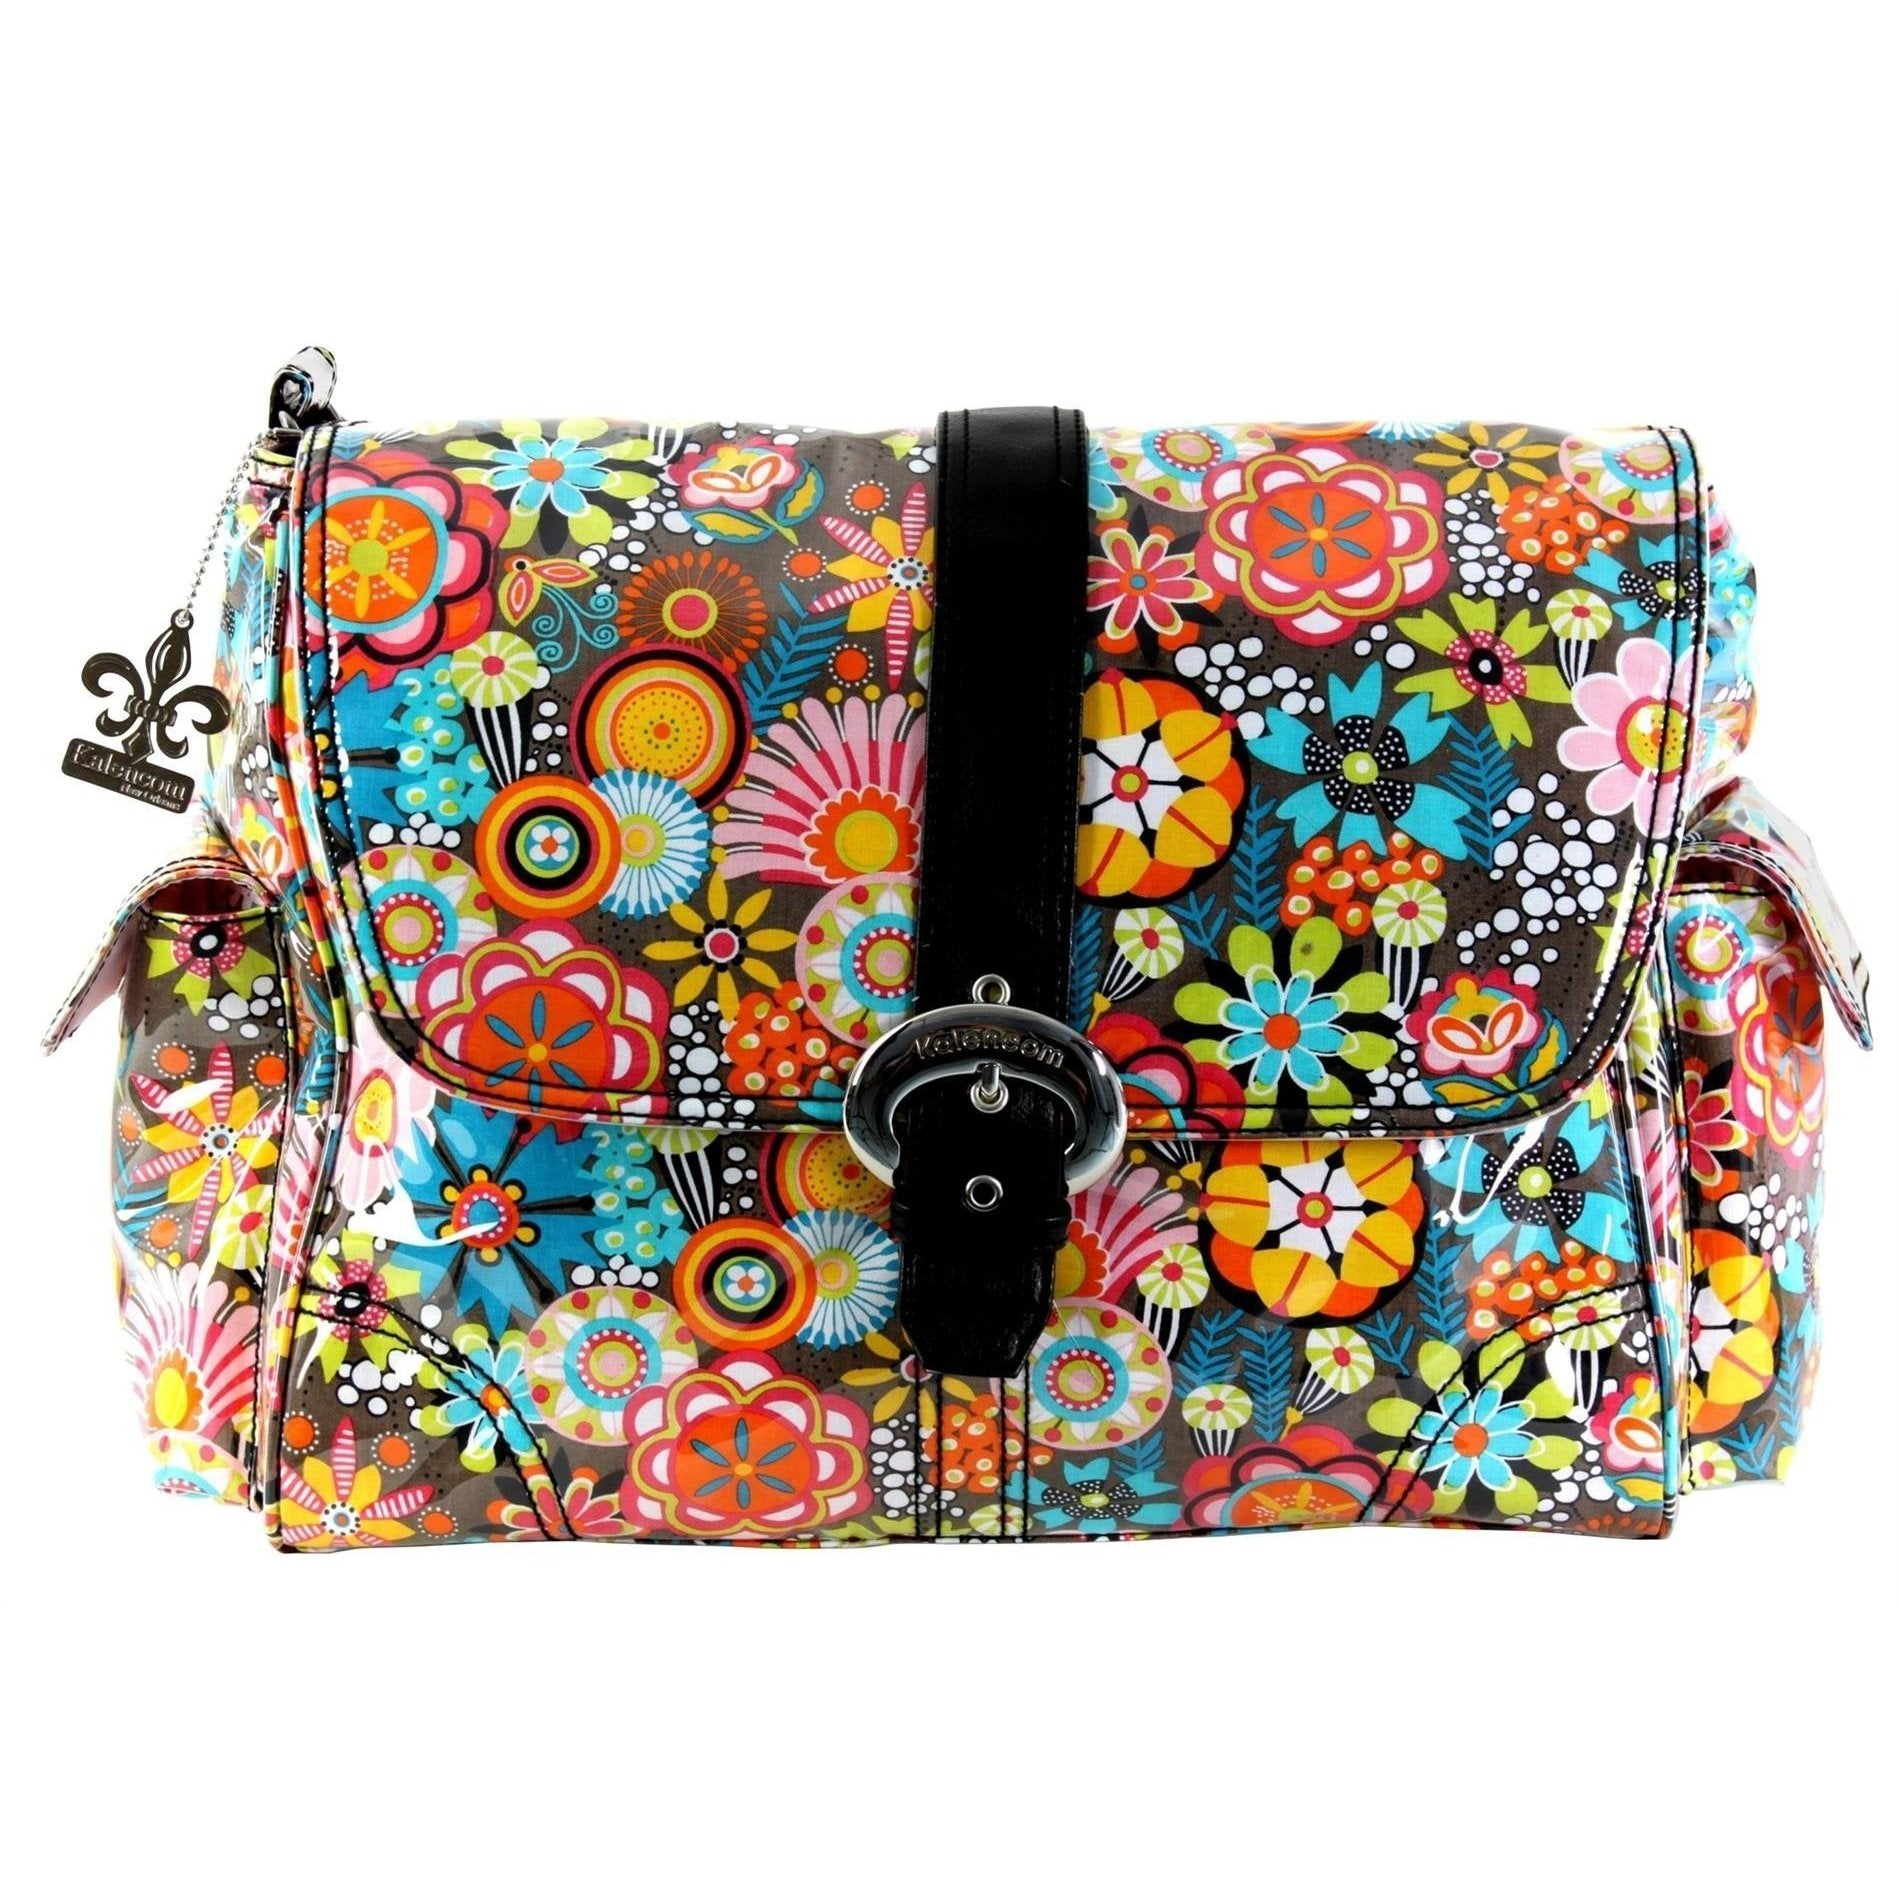 Retro Floral Laminated Buckle Diaper Bag | Style 2960 - Kalencom-Diaper Bags-Jack and Jill Boutique